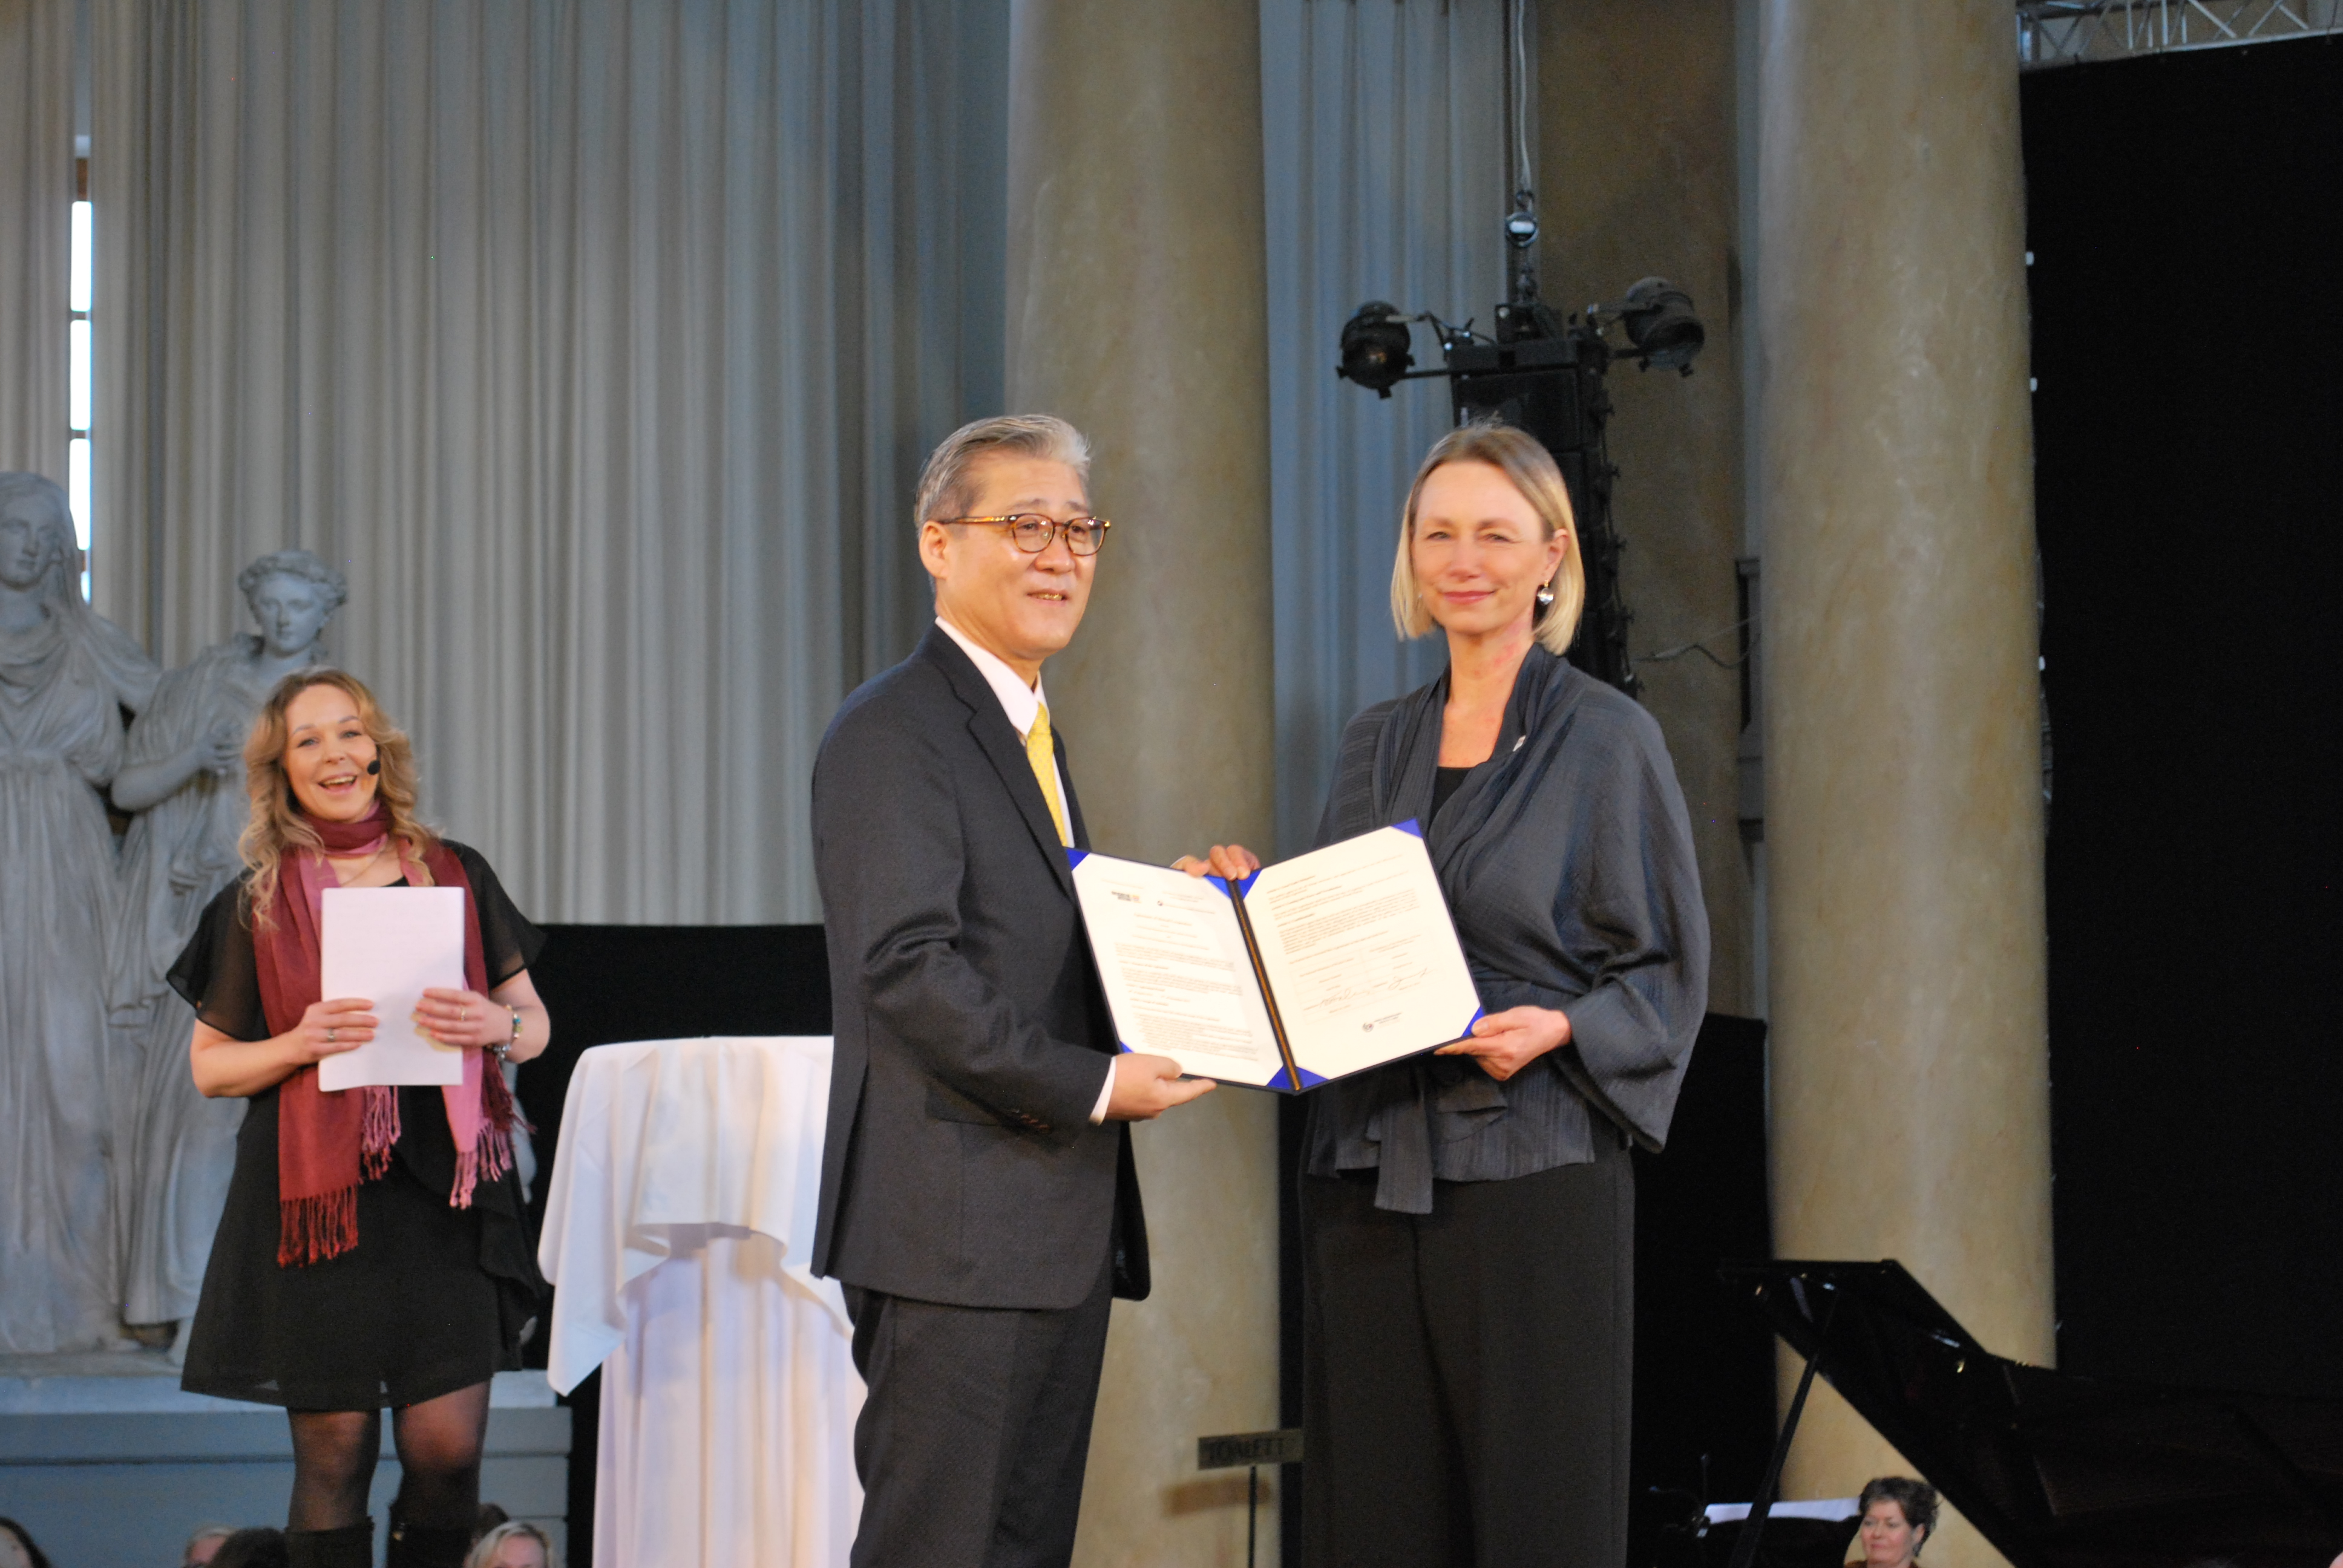 (Ambassador Lee and Ann Follin, the Director General of the Swedish National Museums of World Culture, arranging the agreement)